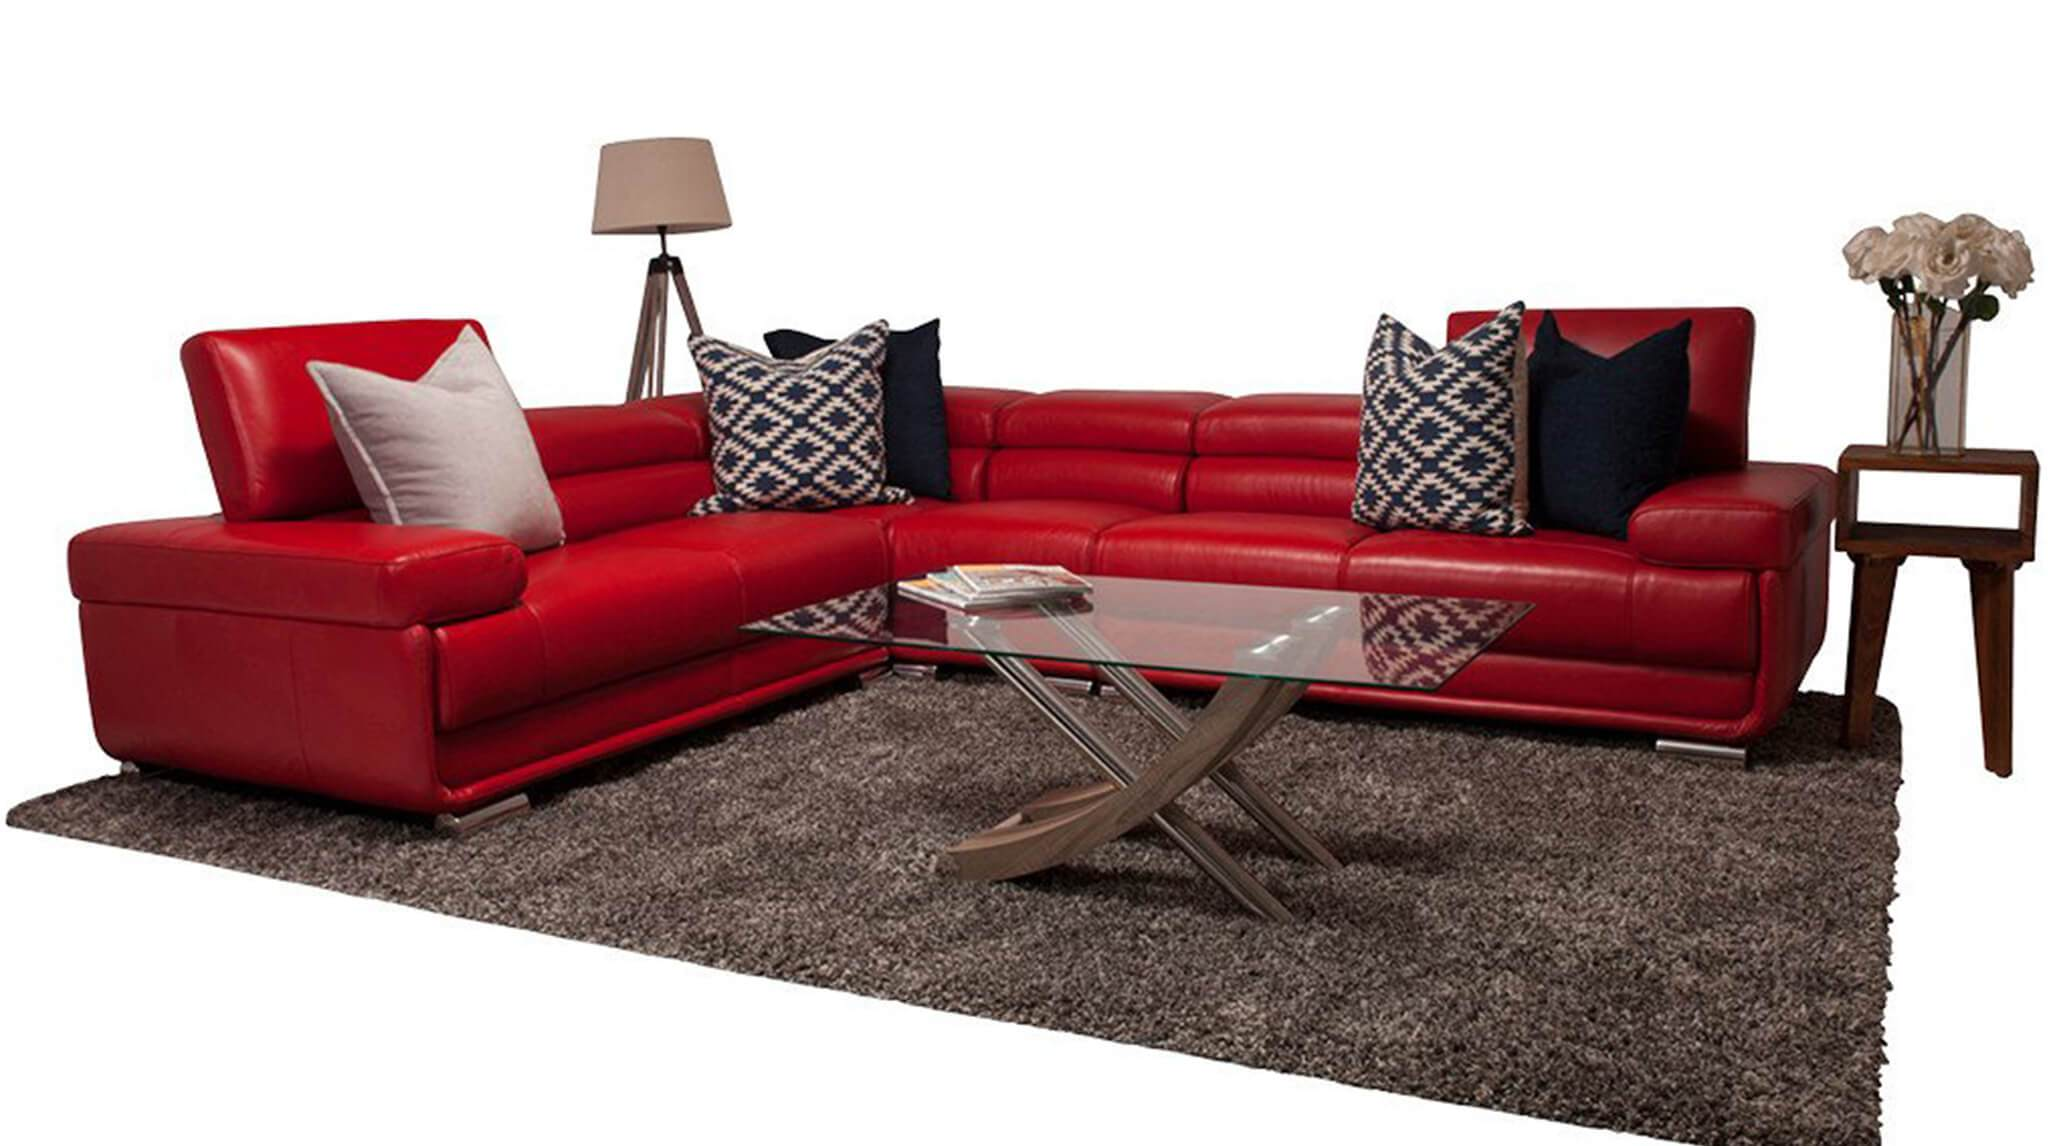 San Miguel Leather Sectional